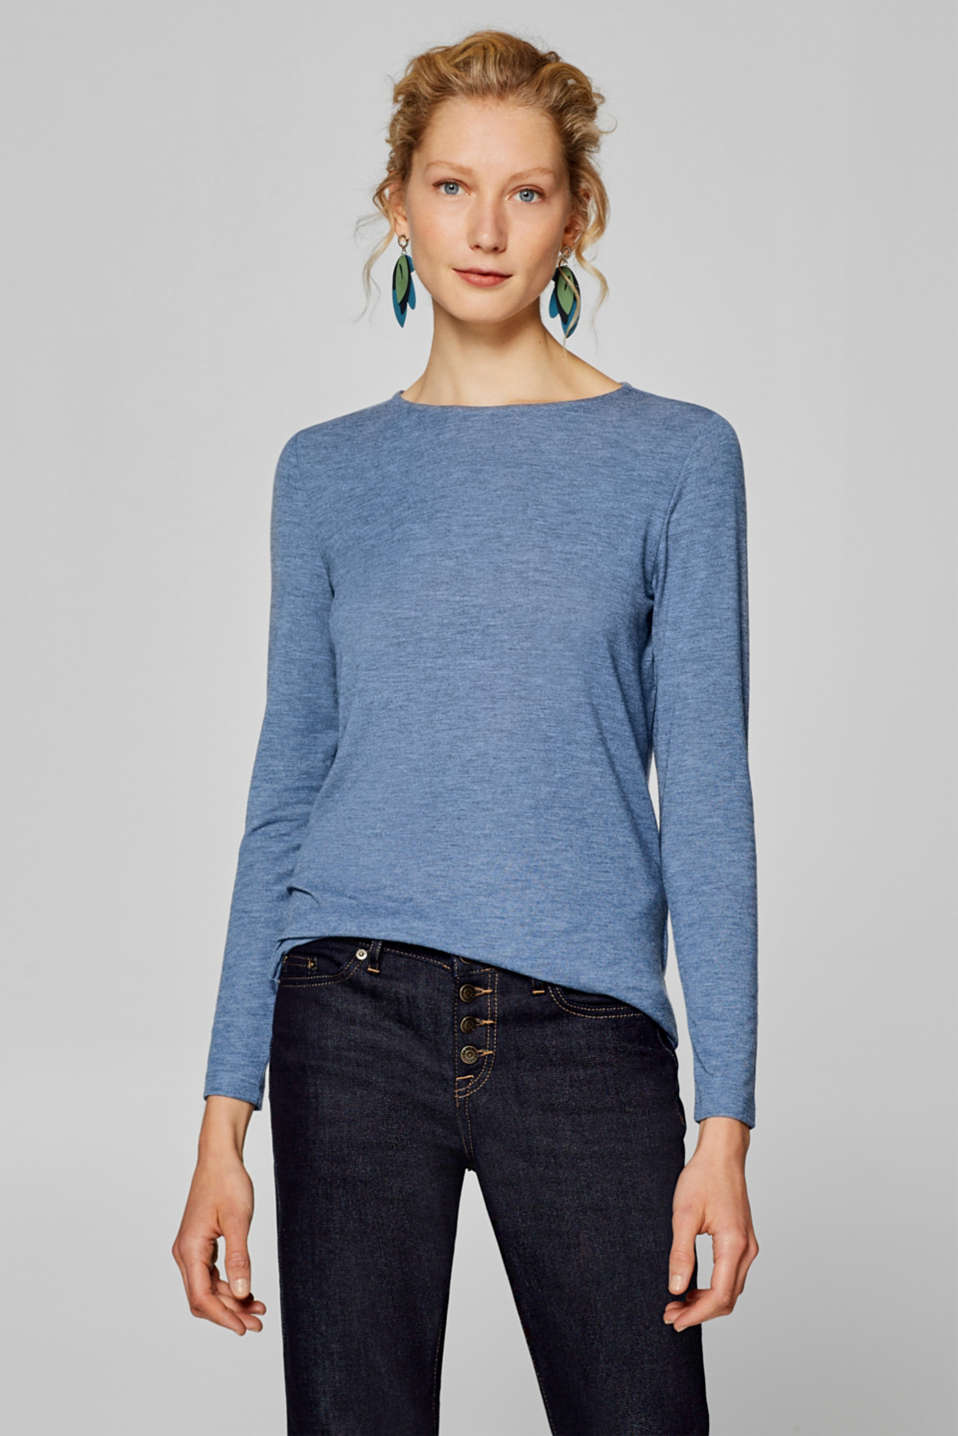 Esprit - Long sleeve top with elbow patches